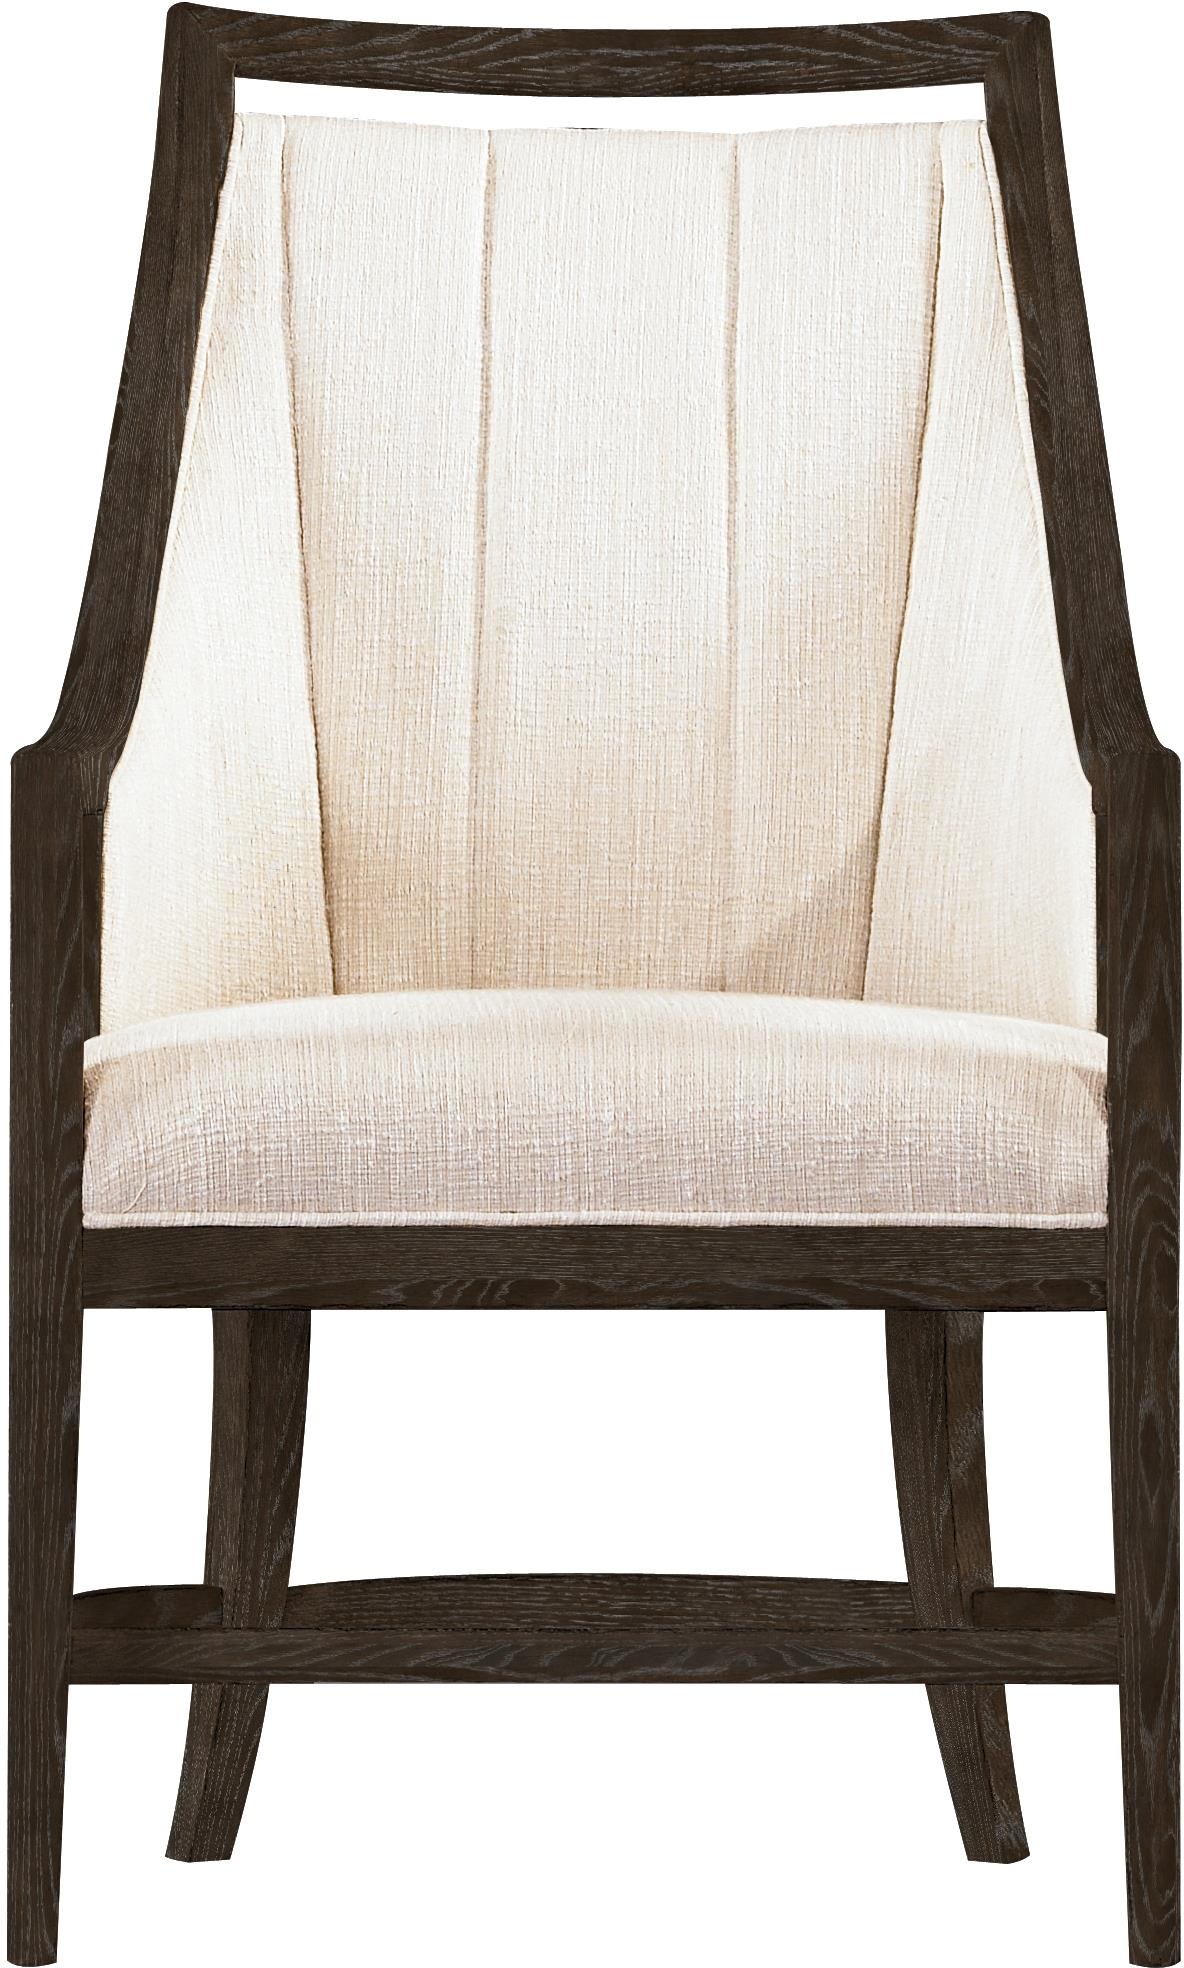 Stanley Furniture Coastal Living Resort By the Bay Host Chair - Item Number: 062-11-75